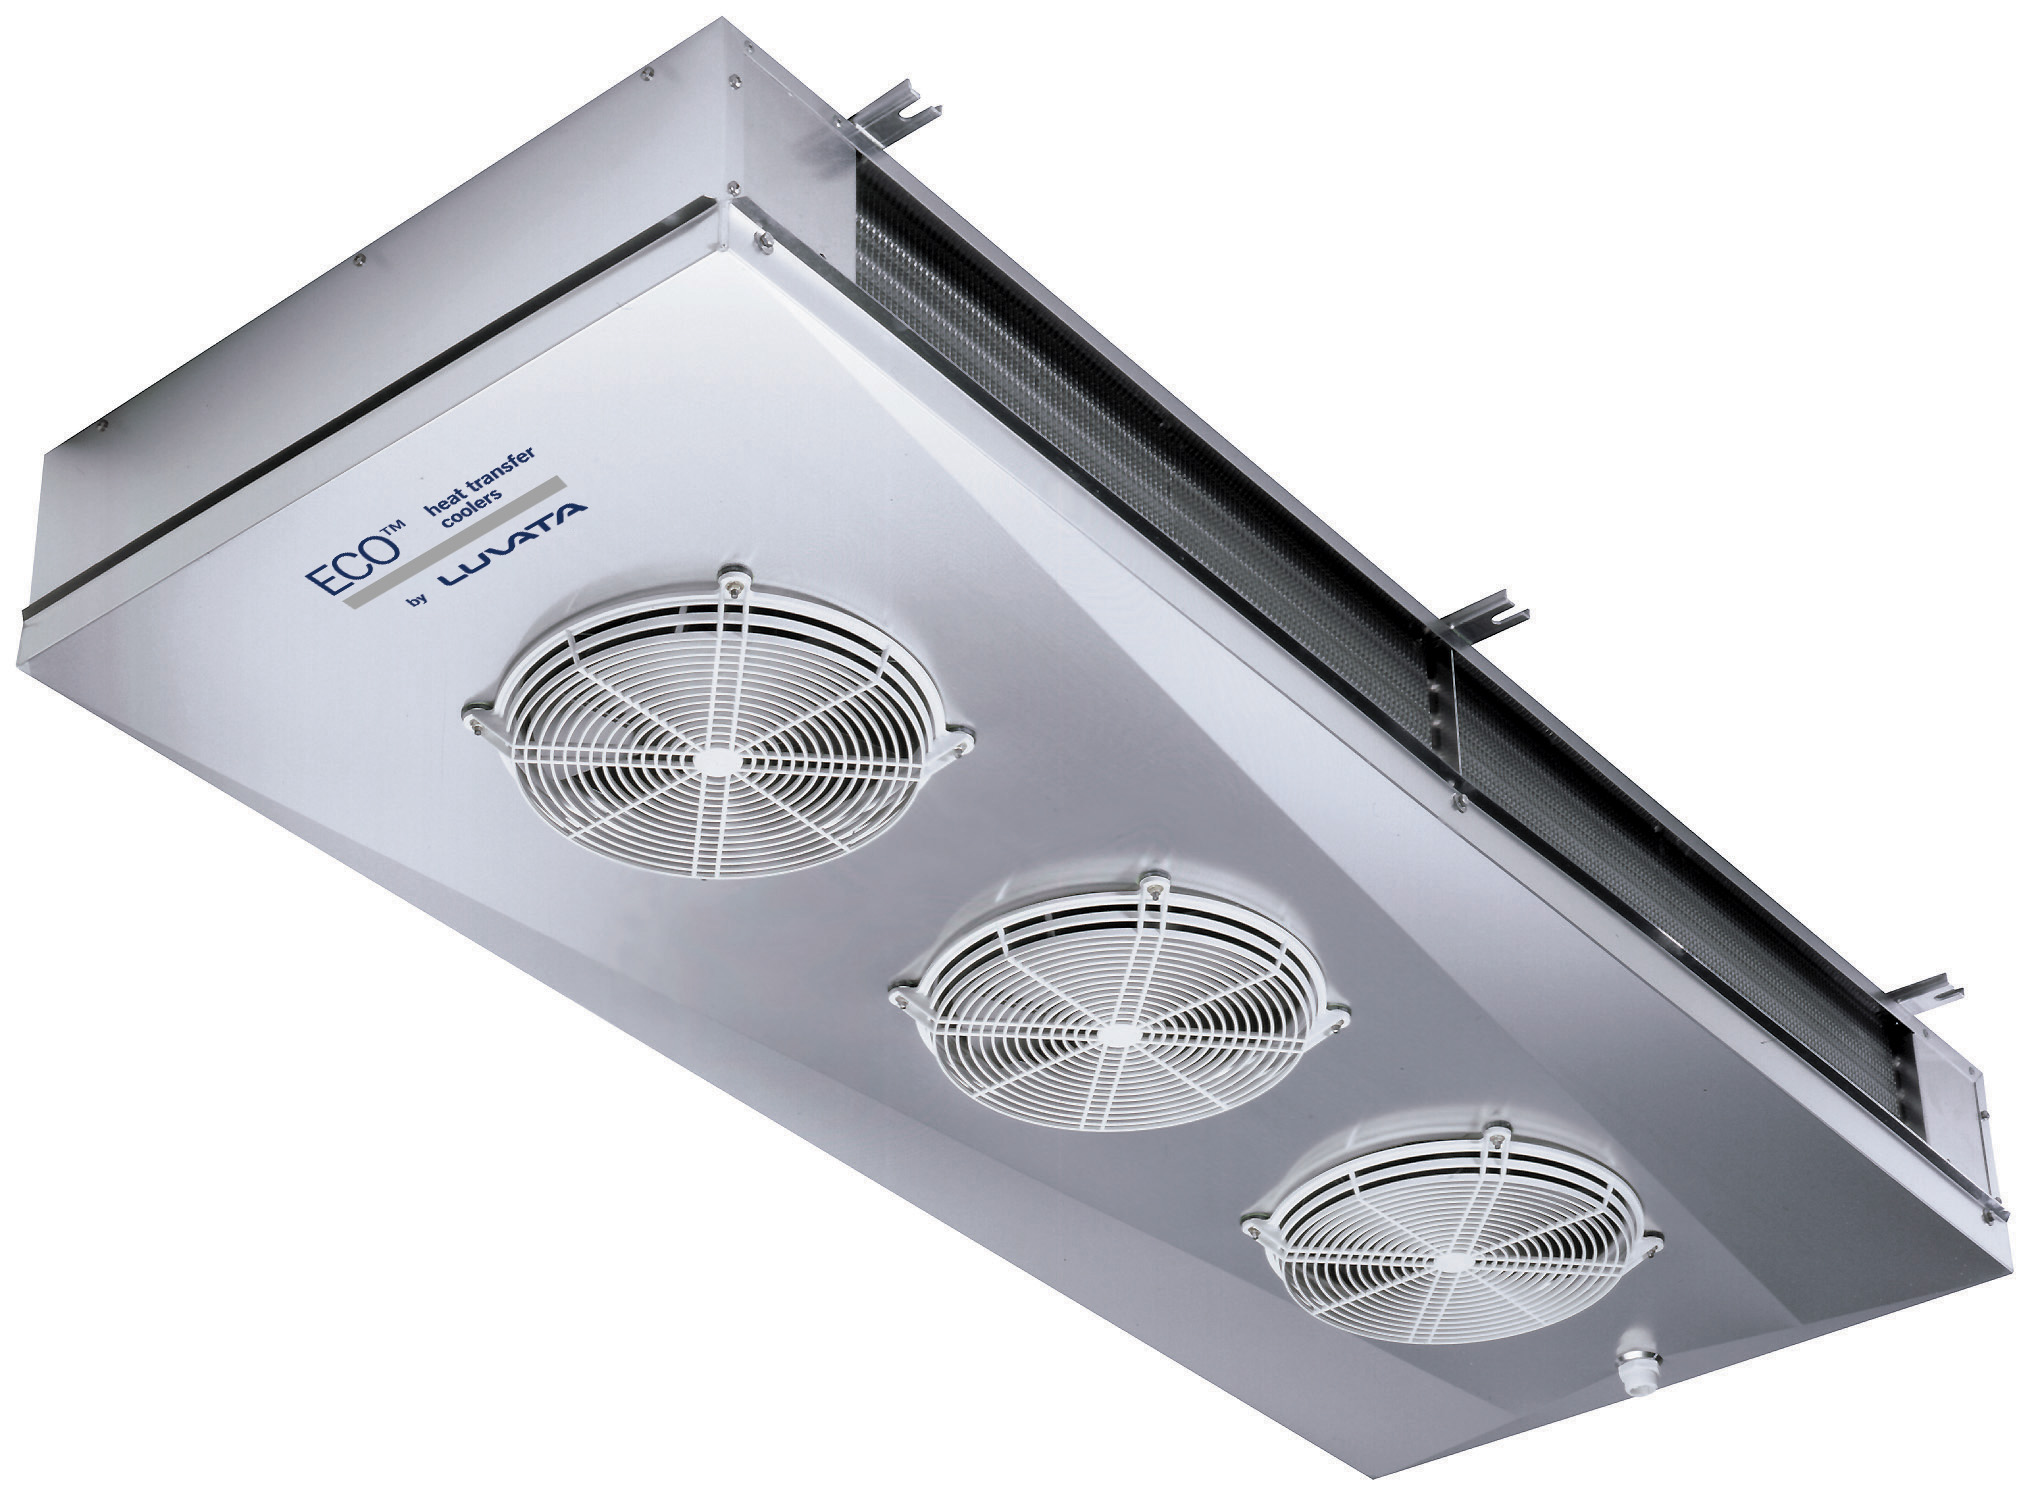 DFE_Dual discharge unit coolers and brine coolers for commercial cold rooms